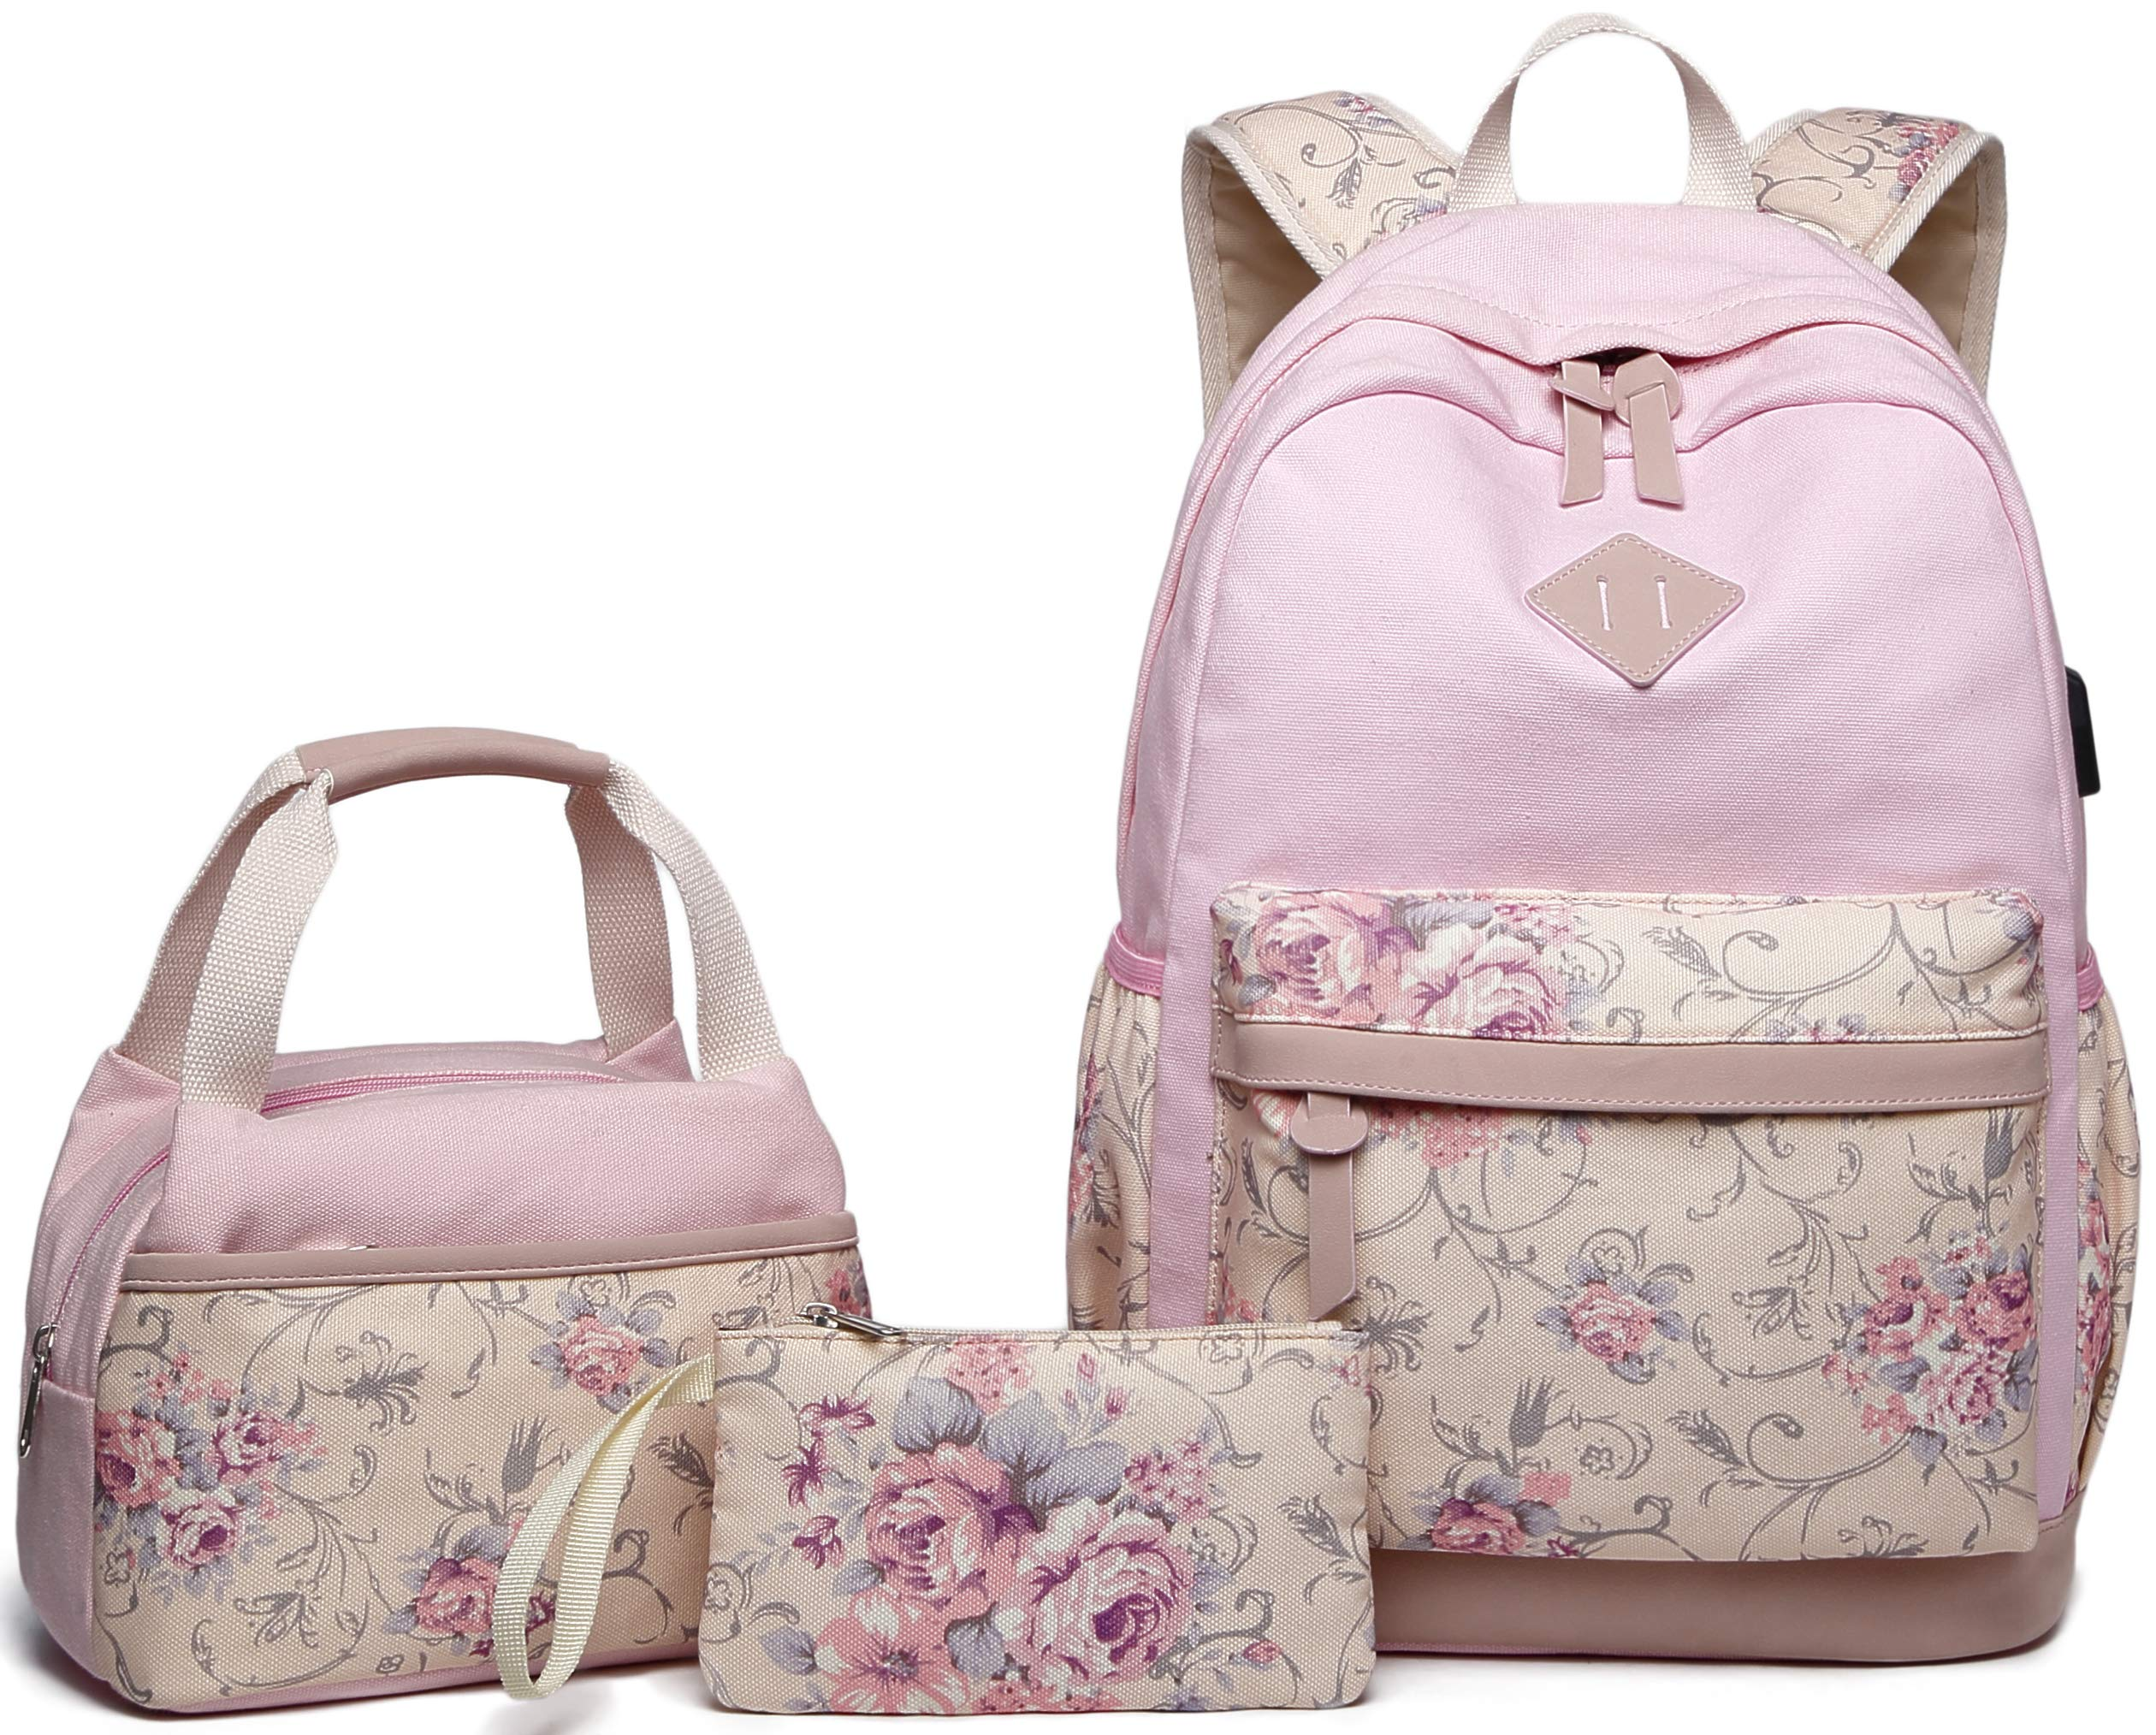 Abshoo Lightweight Canvas Floral Teen Backpacks for Girls School Backpack with Lunch Bag (9G4 Pink) by abshoo